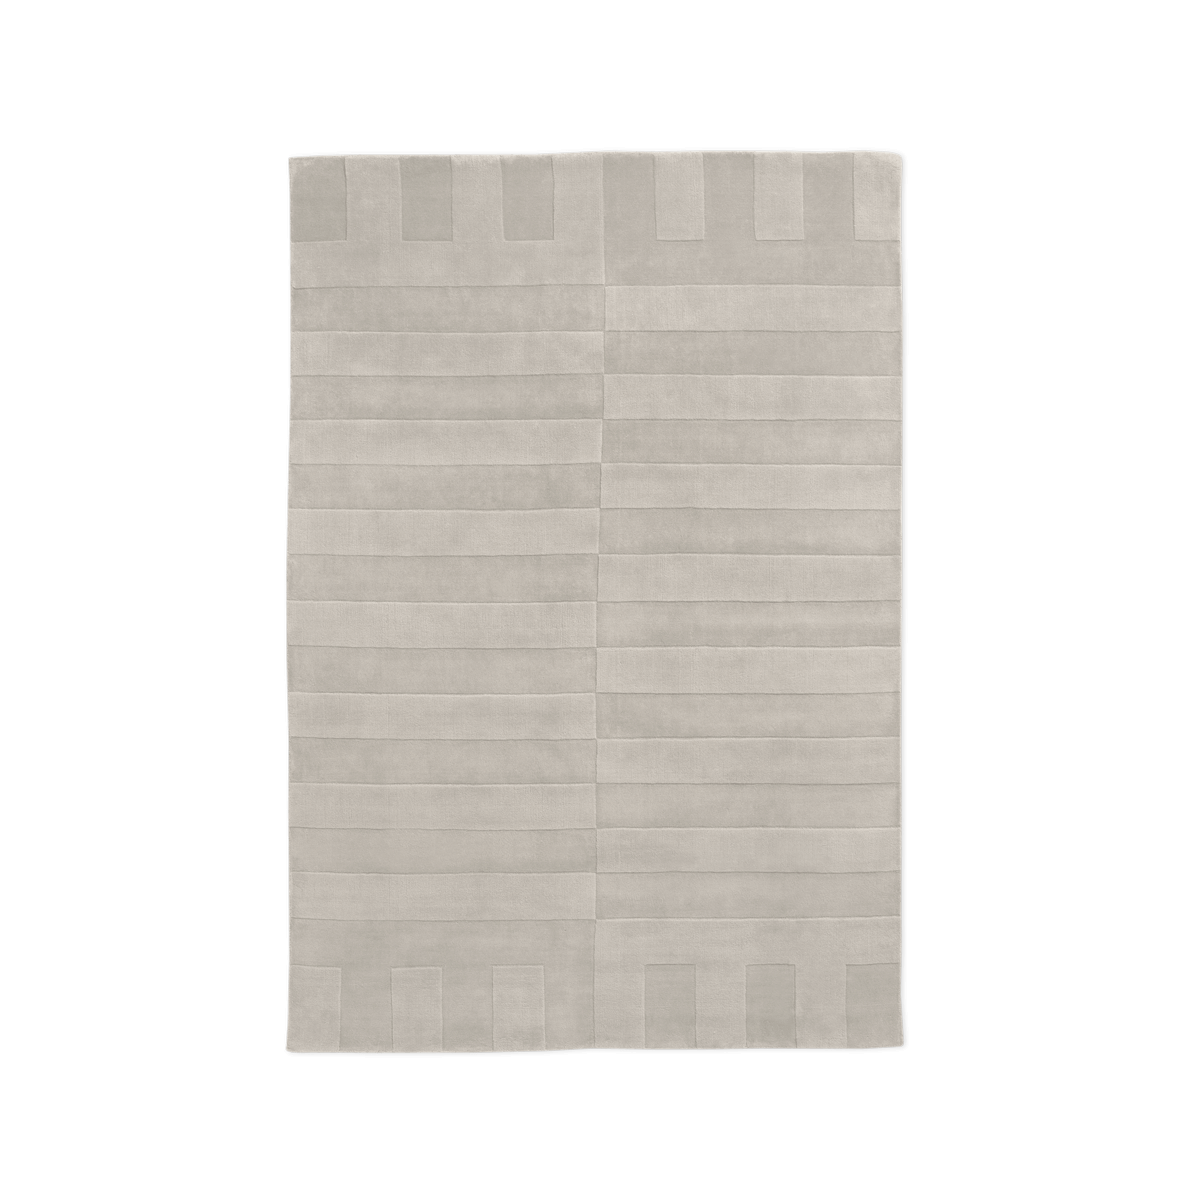 Product image of the plush rug Lux 2 in the color Oatmeal. The pile of the rug is cut in different heights creating a blocky pattern across the rug.